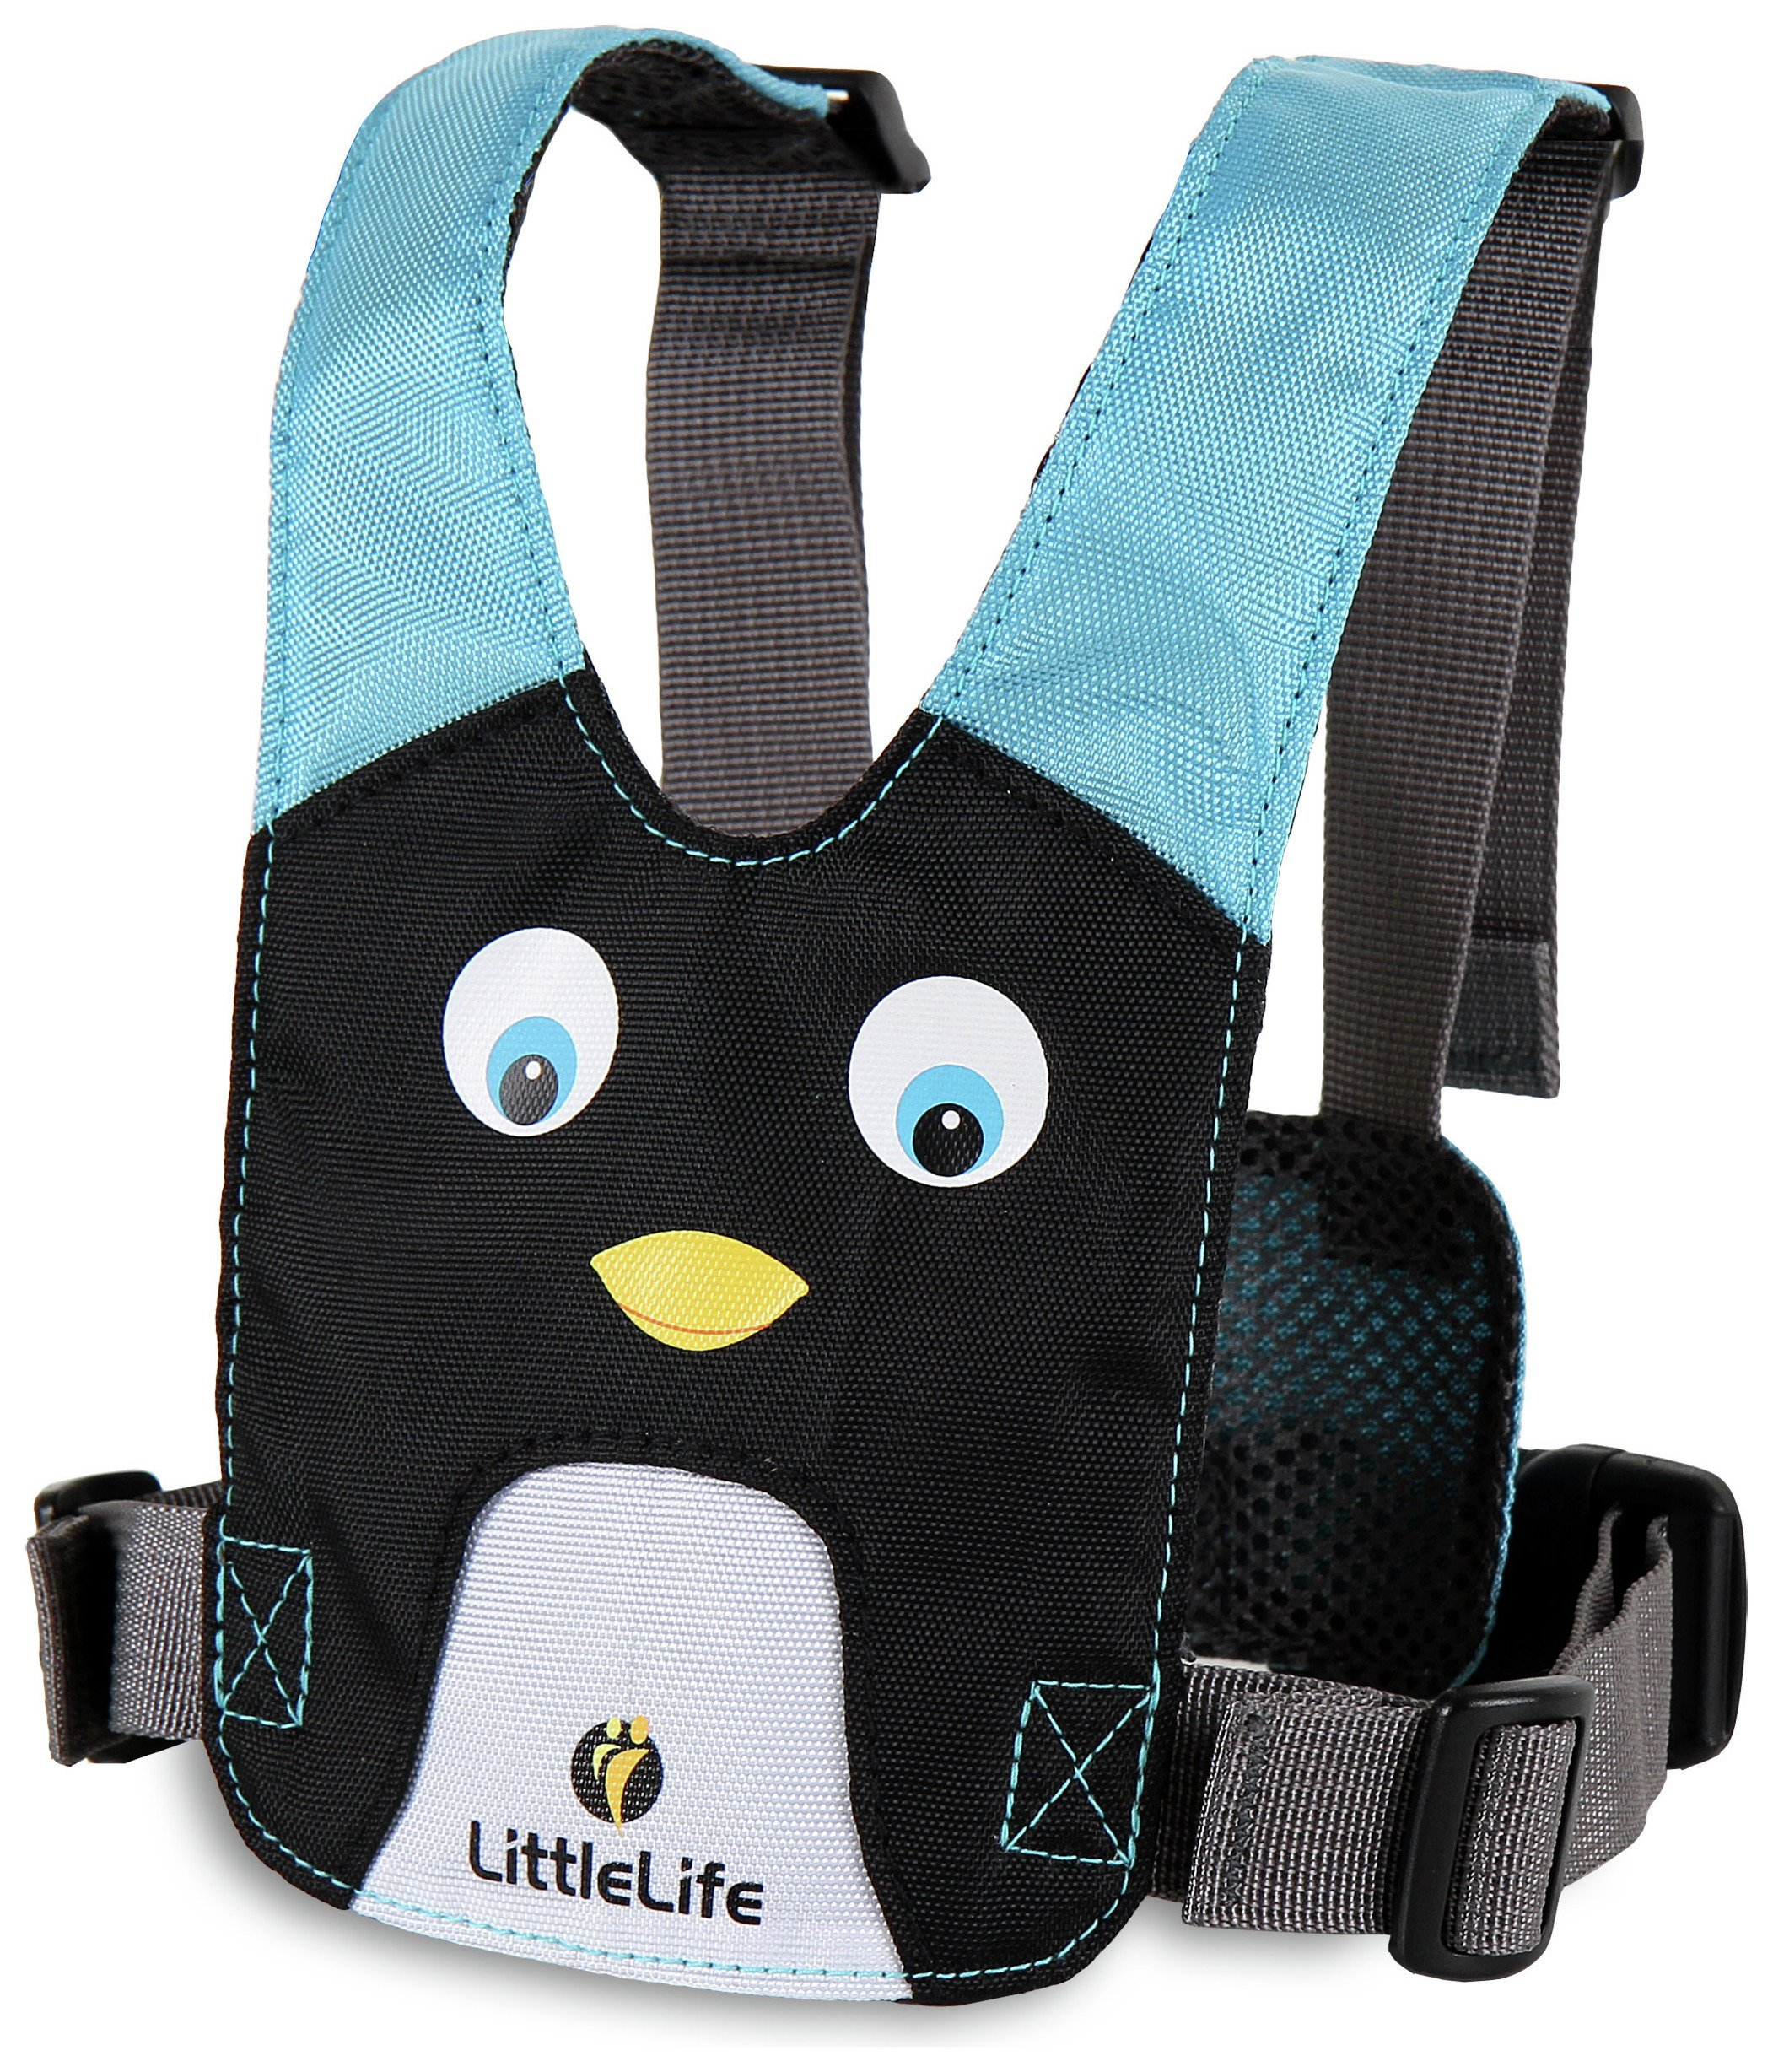 Image of Littlelife Safety Harness - Penguin